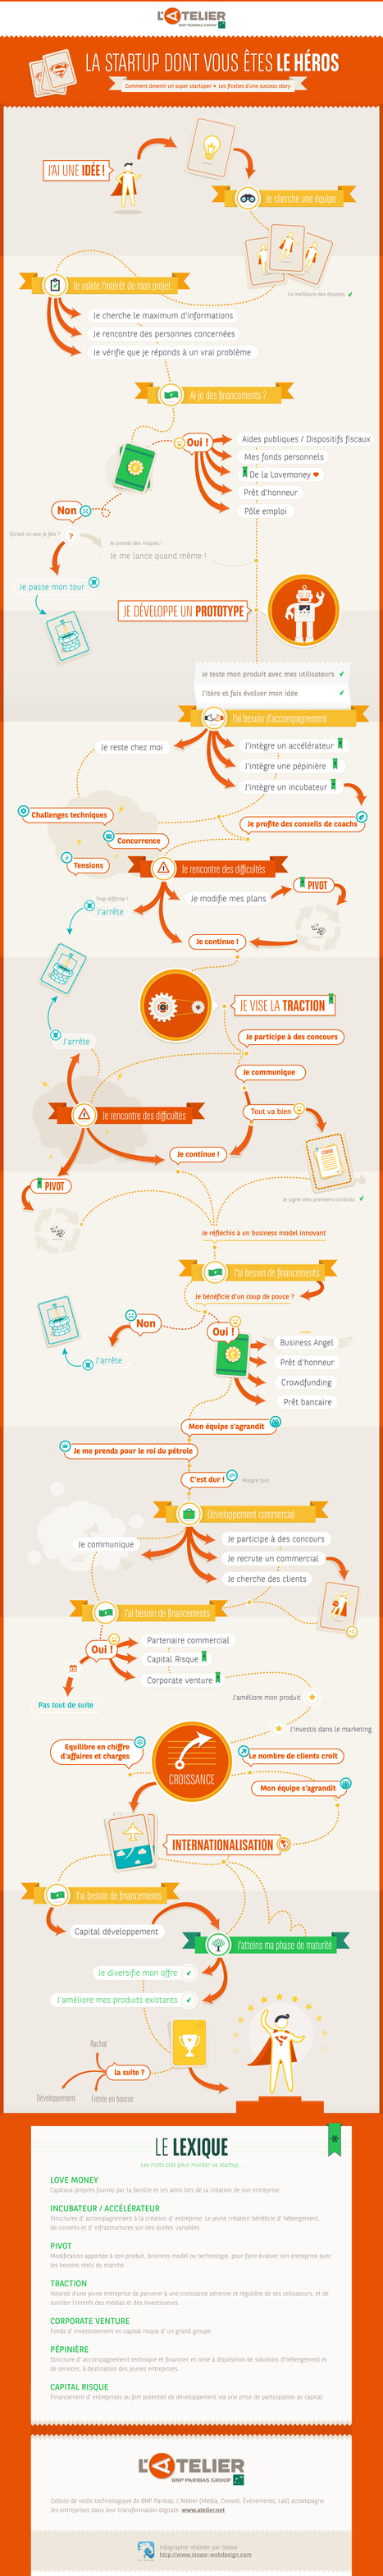 [Infograhie] La startup dont vous êtes le héros | Innovation Disruptive | Scoop.it